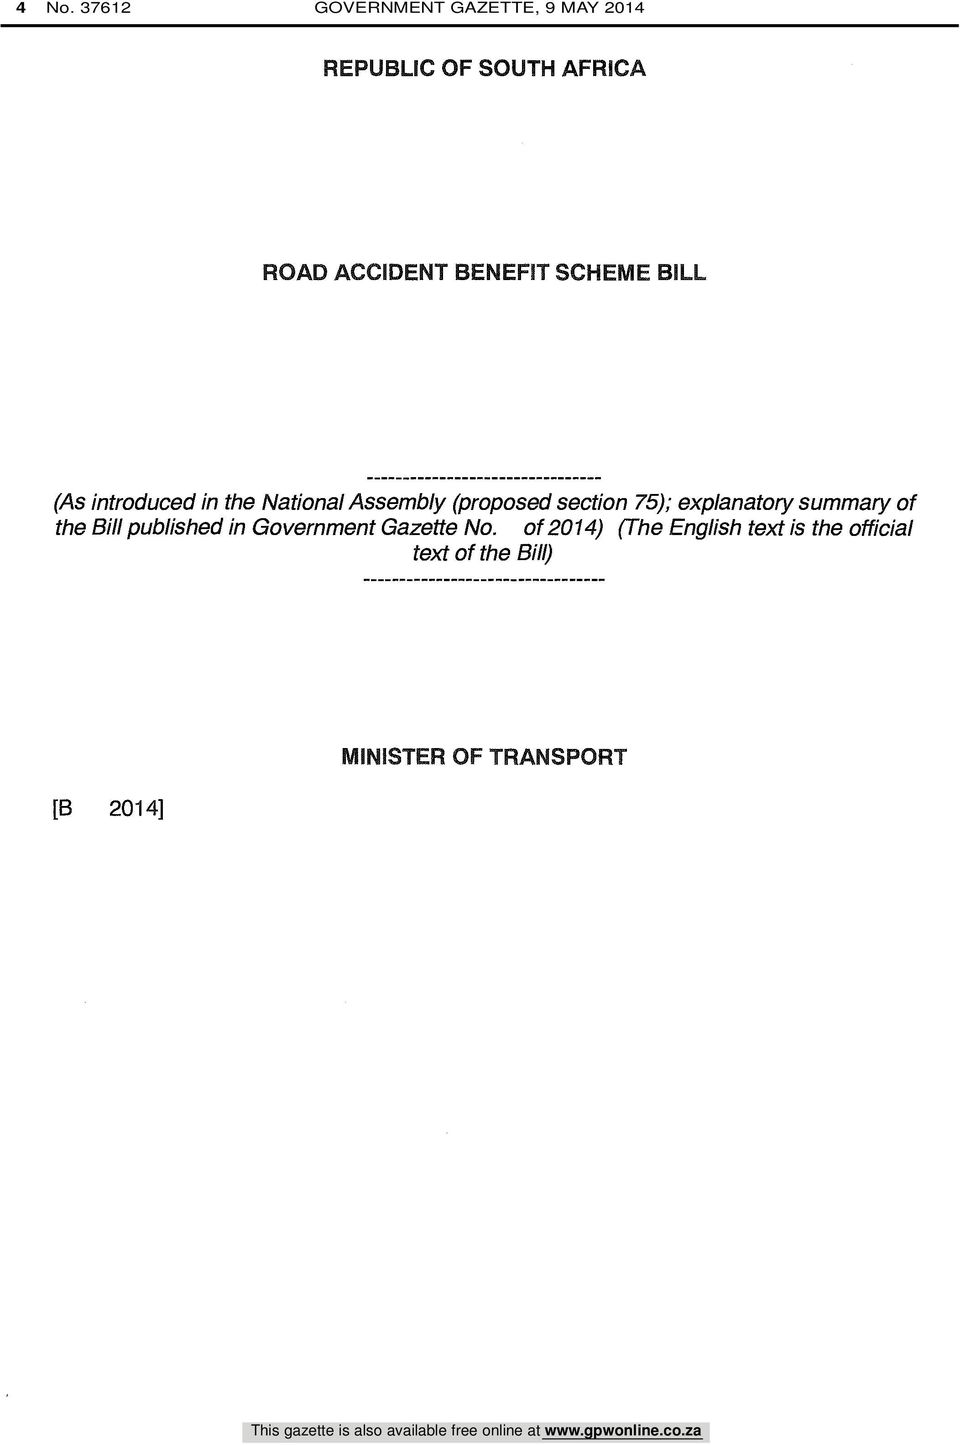 section 75); explanatory summary of the Bill published in Government Gazette No.